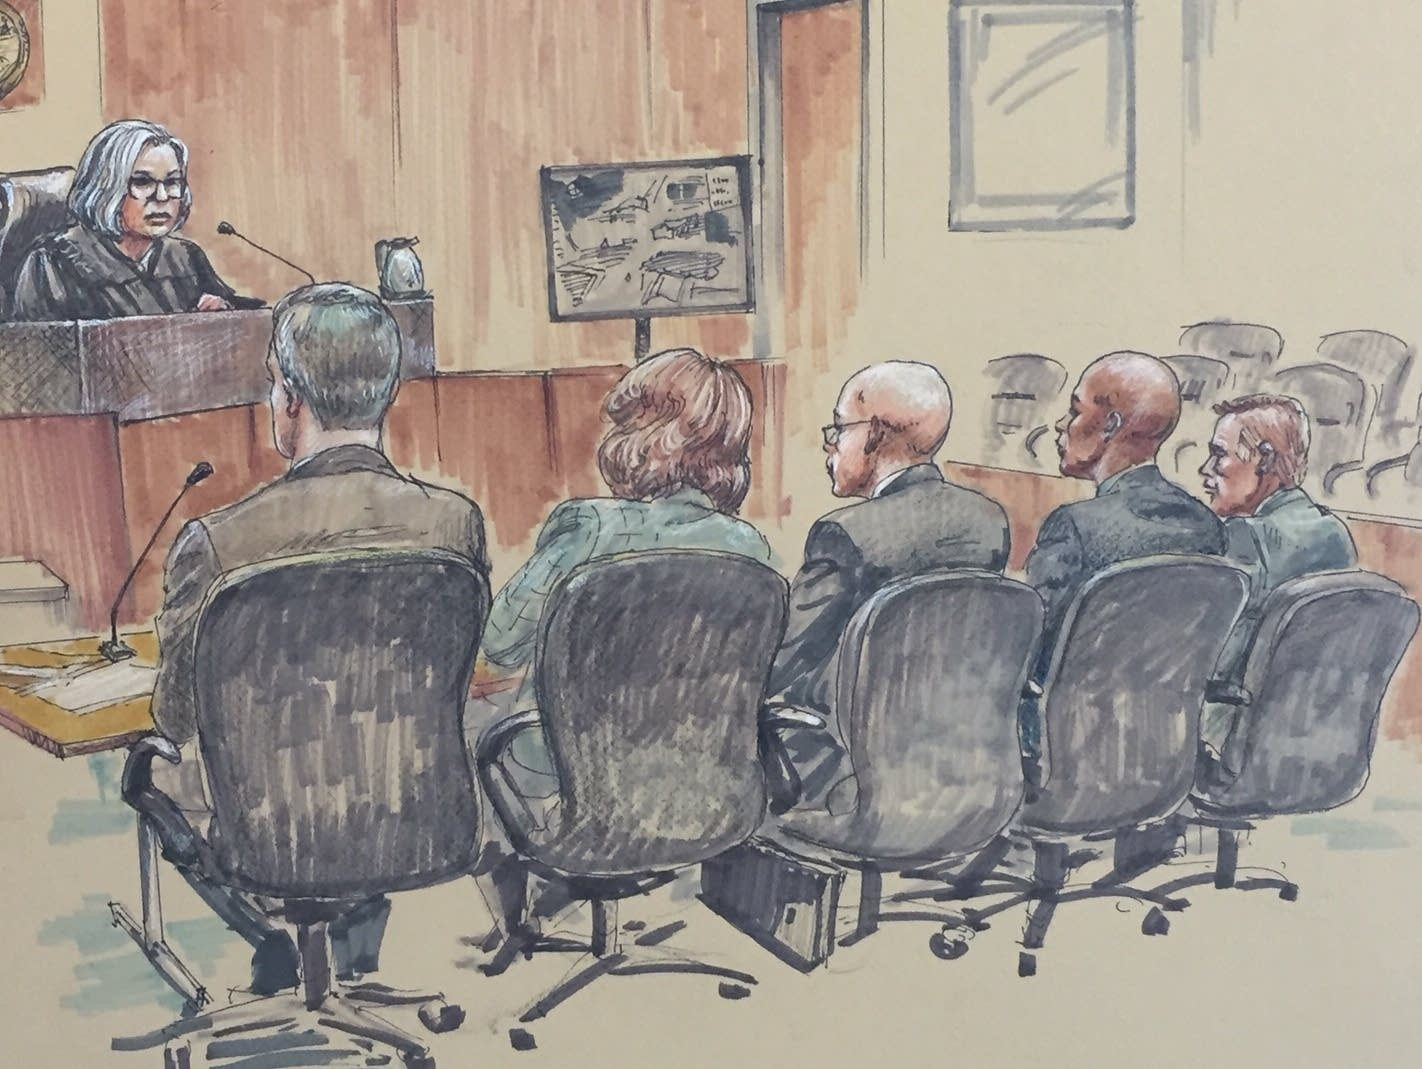 Inside the courtroom at Mohamed Noor's trial on Tuesday, April 2, 2019.